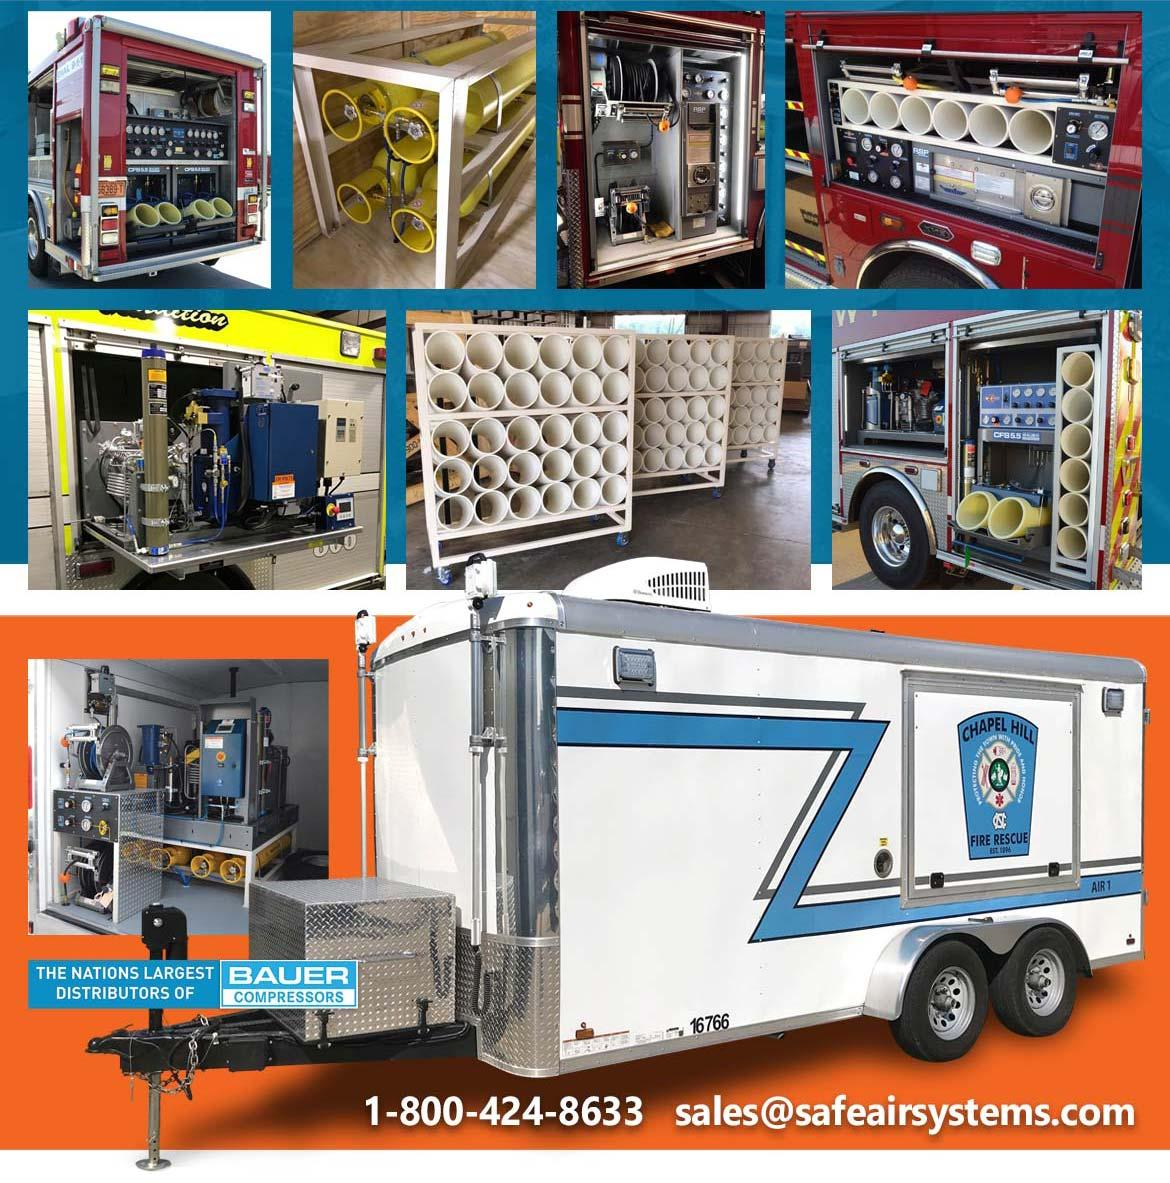 Safe Air Systems offers Air Control Panels, Minor and Major Fire Apparatus Up-Fits for your needs.